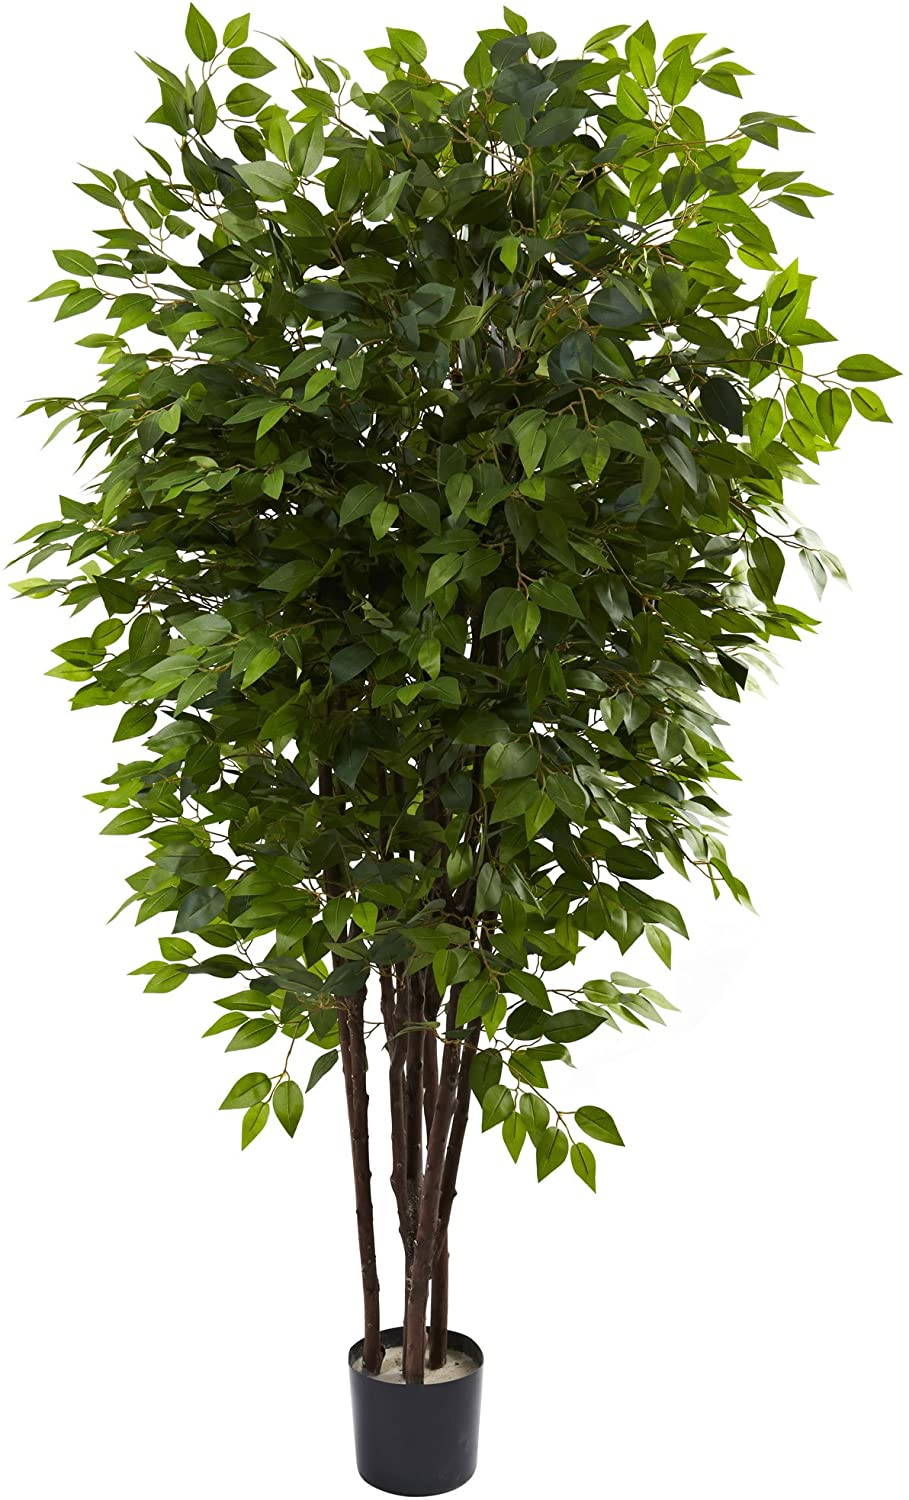 Nearly Quantity limited Natural 5402 6.5ft. Deluxe Fort Worth Mall 48x48x78 Green Tree Ficus